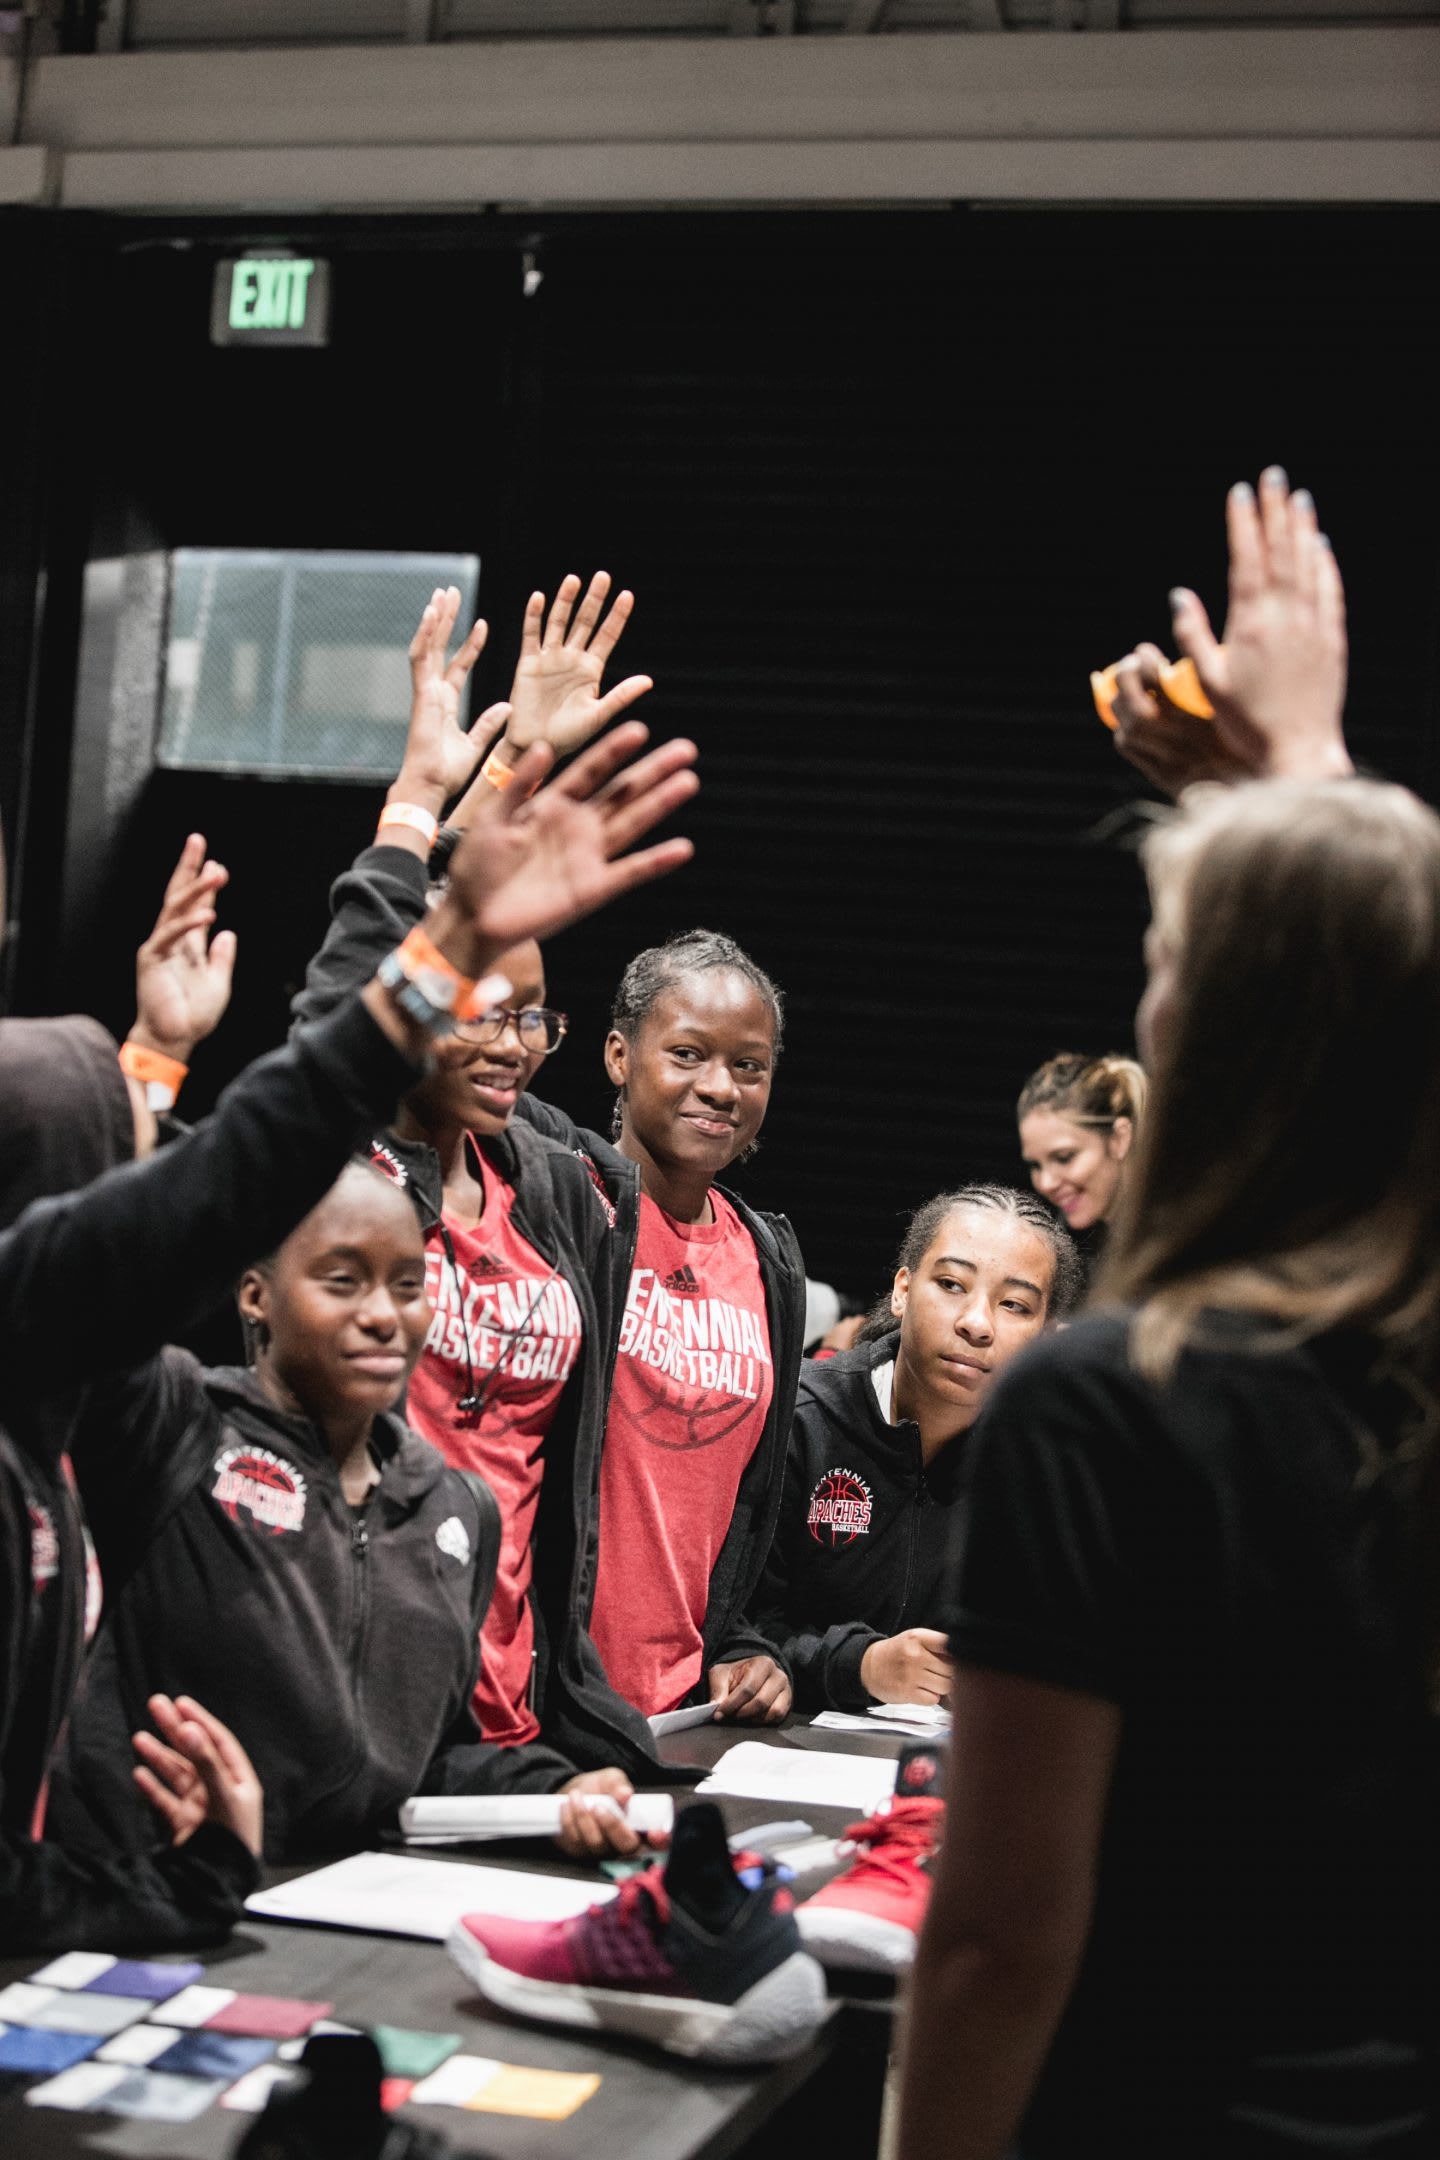 Young women standing at a desk and raising their hands. Sports, Team work, collaboration. achievements, success, GamePlan A.